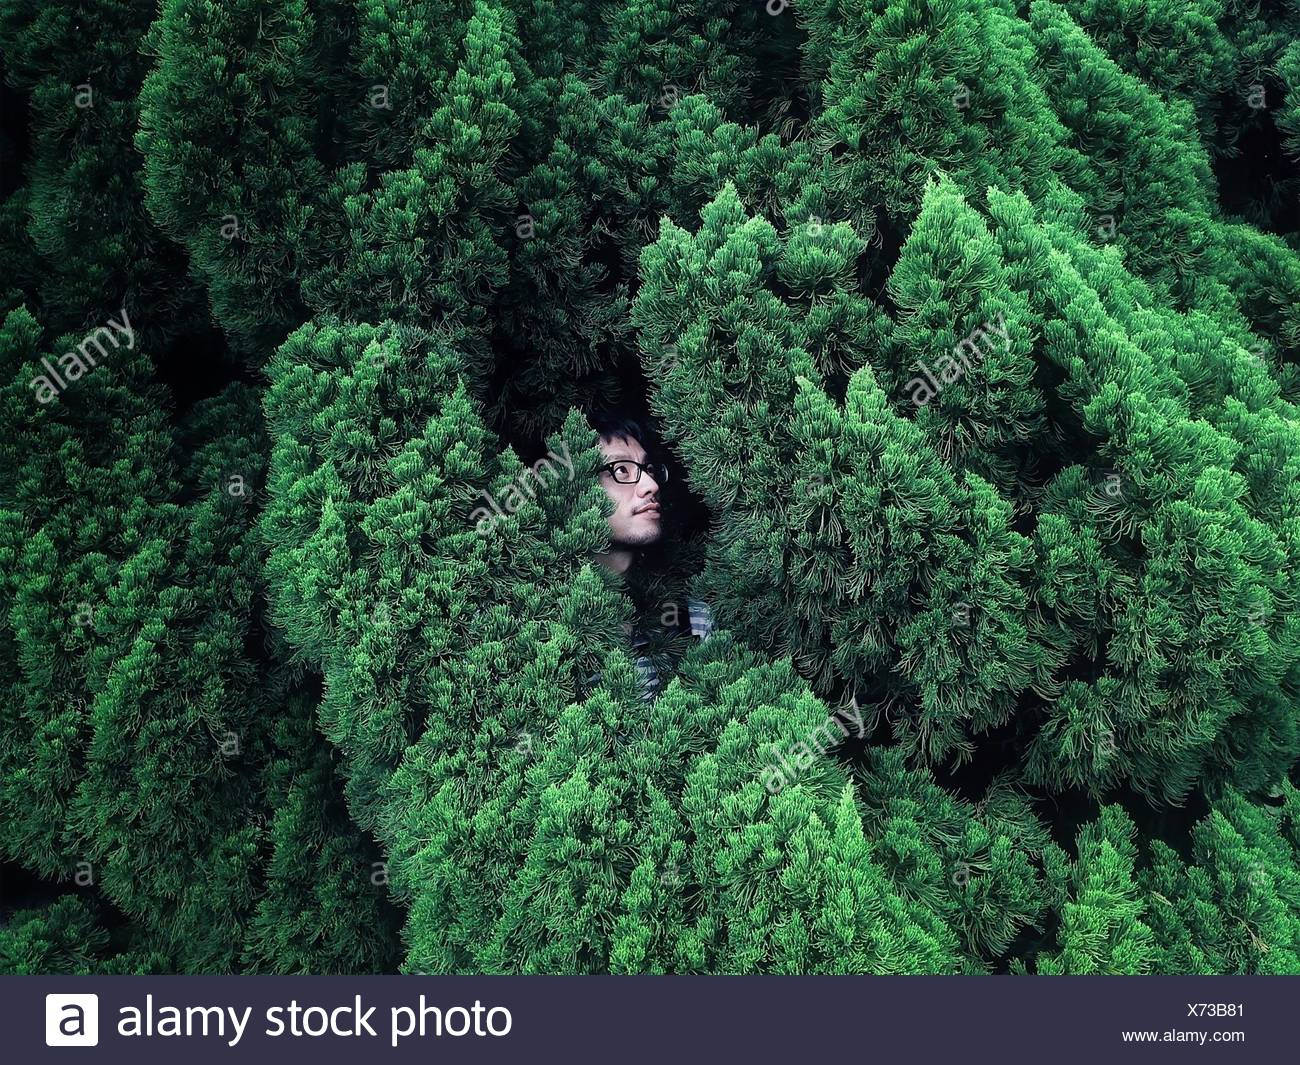 Young Man Hiding In Bush - Stock Image